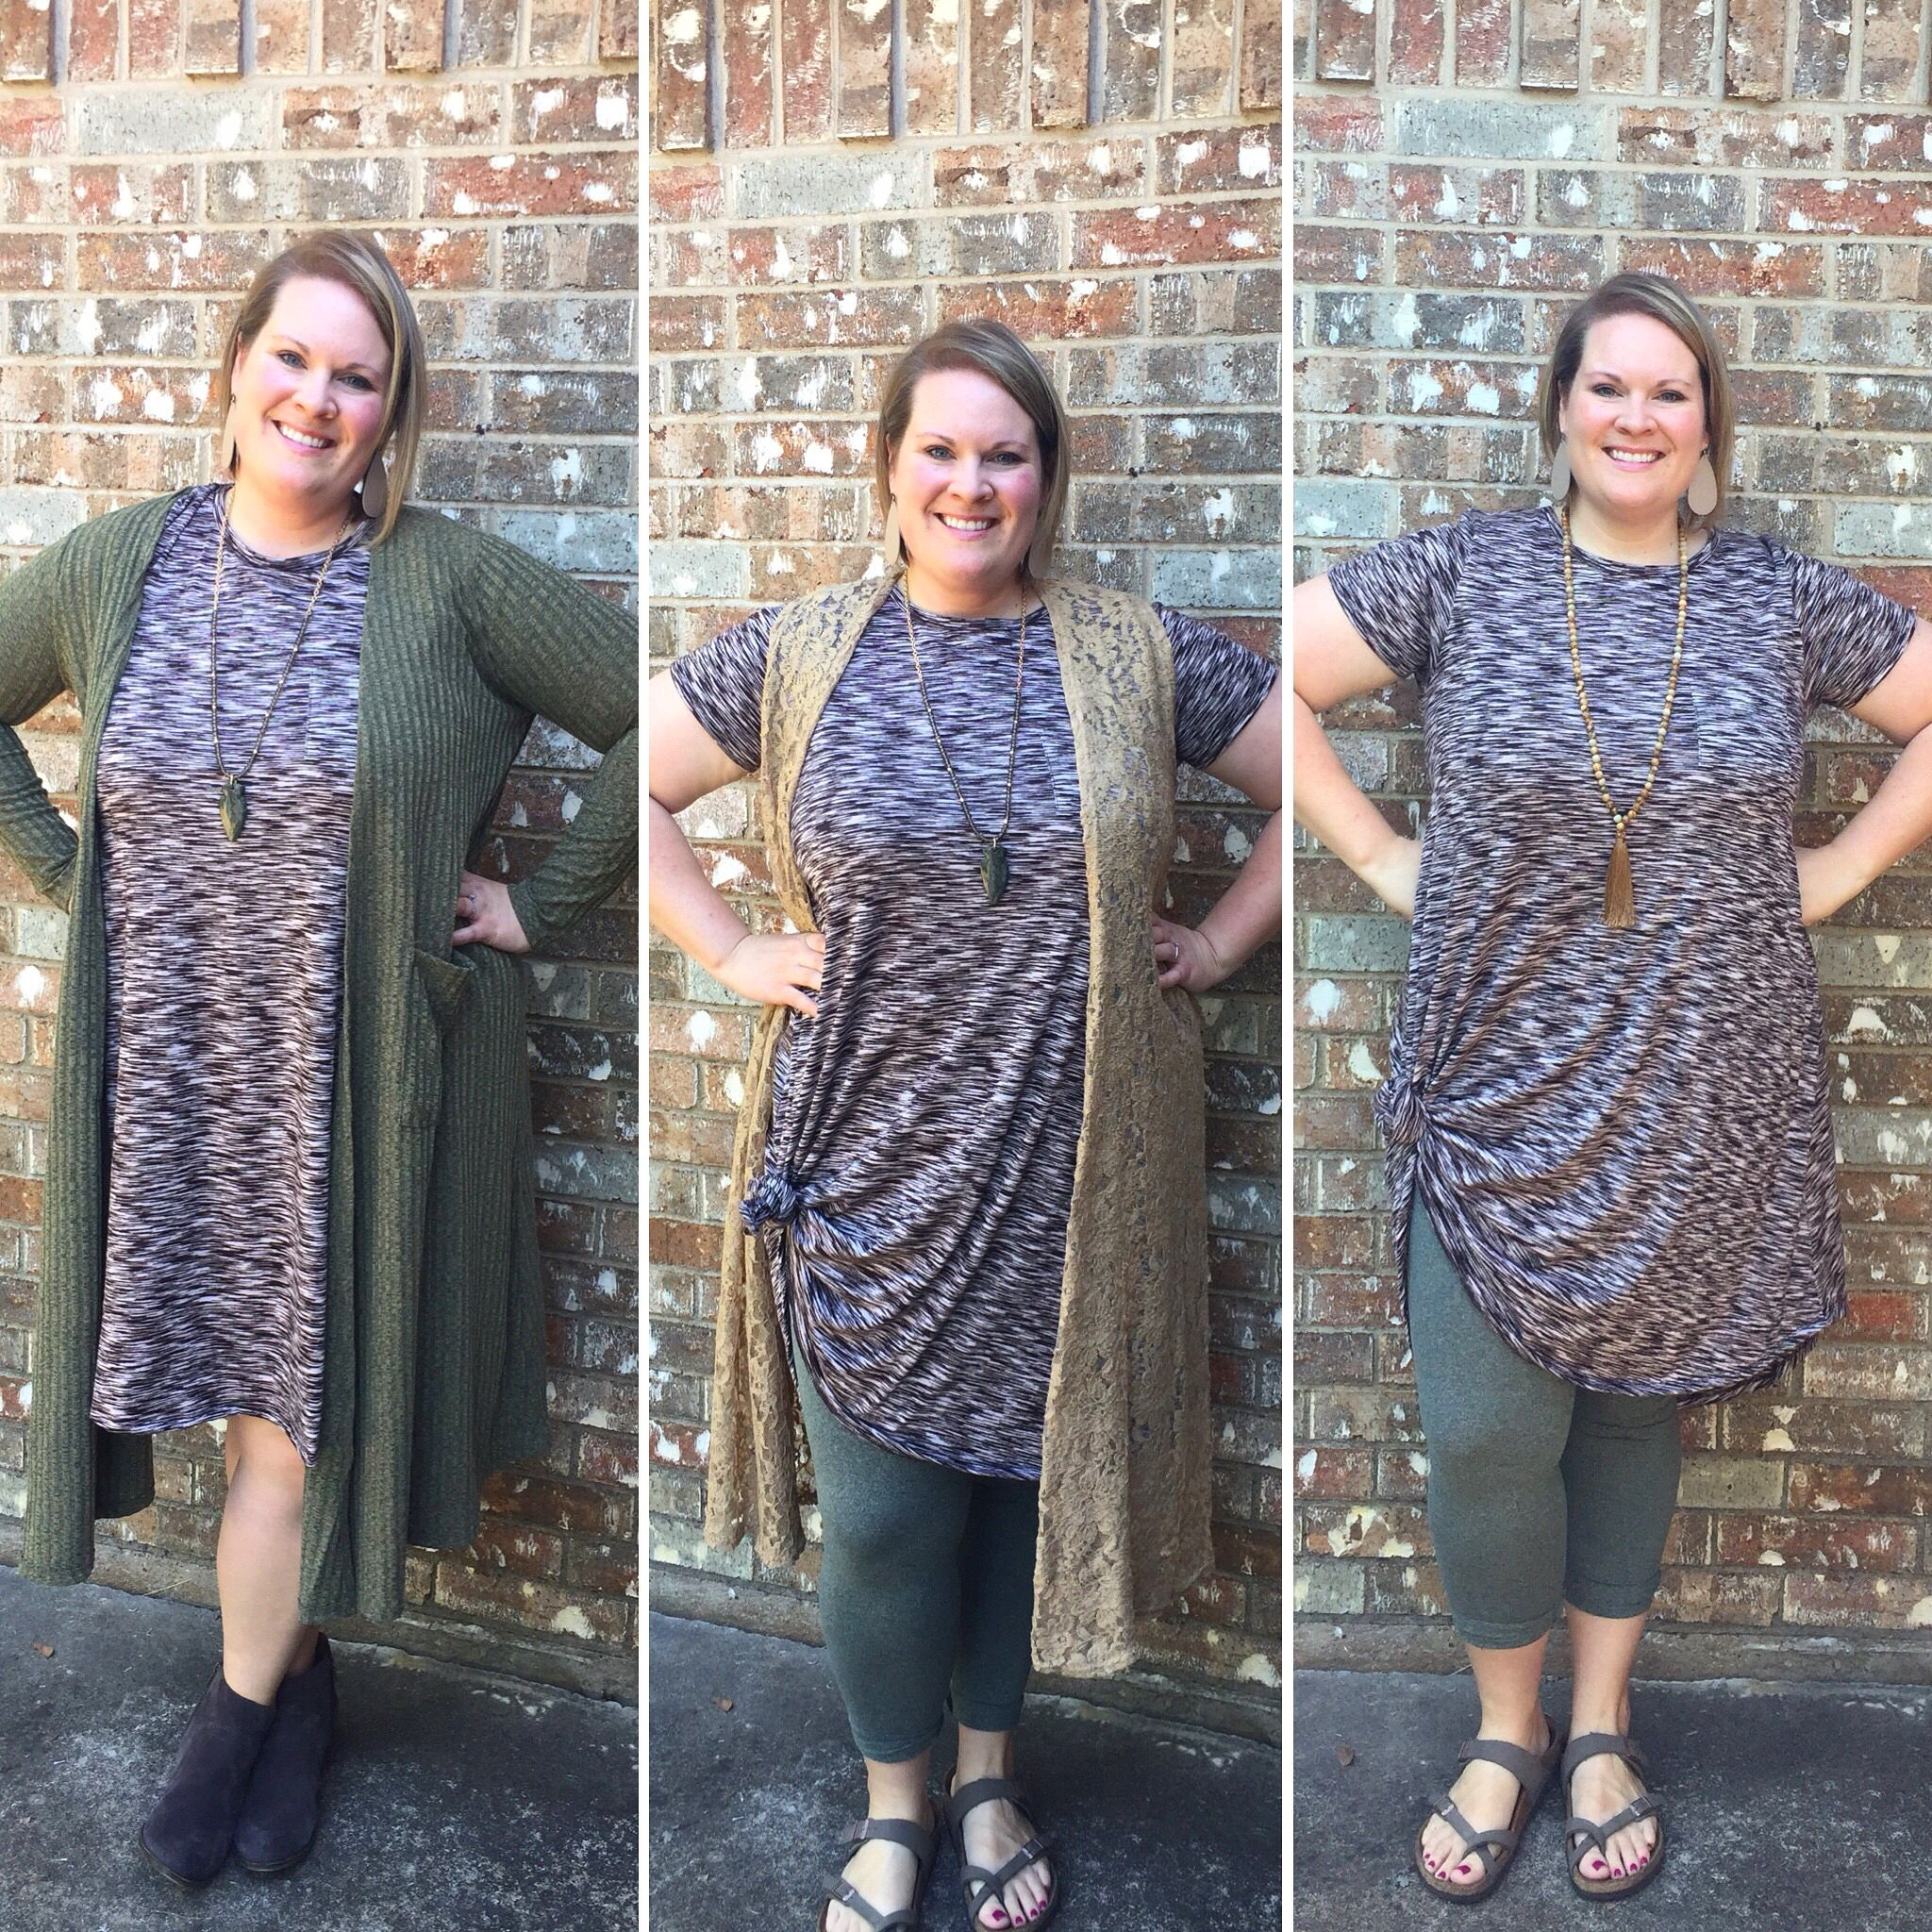 3e2287ba4c413c 3 ways to wear LuLaRoe Carly dress: Sarah and booties, leggings and Joy,  and with Birkenstock and leggings.